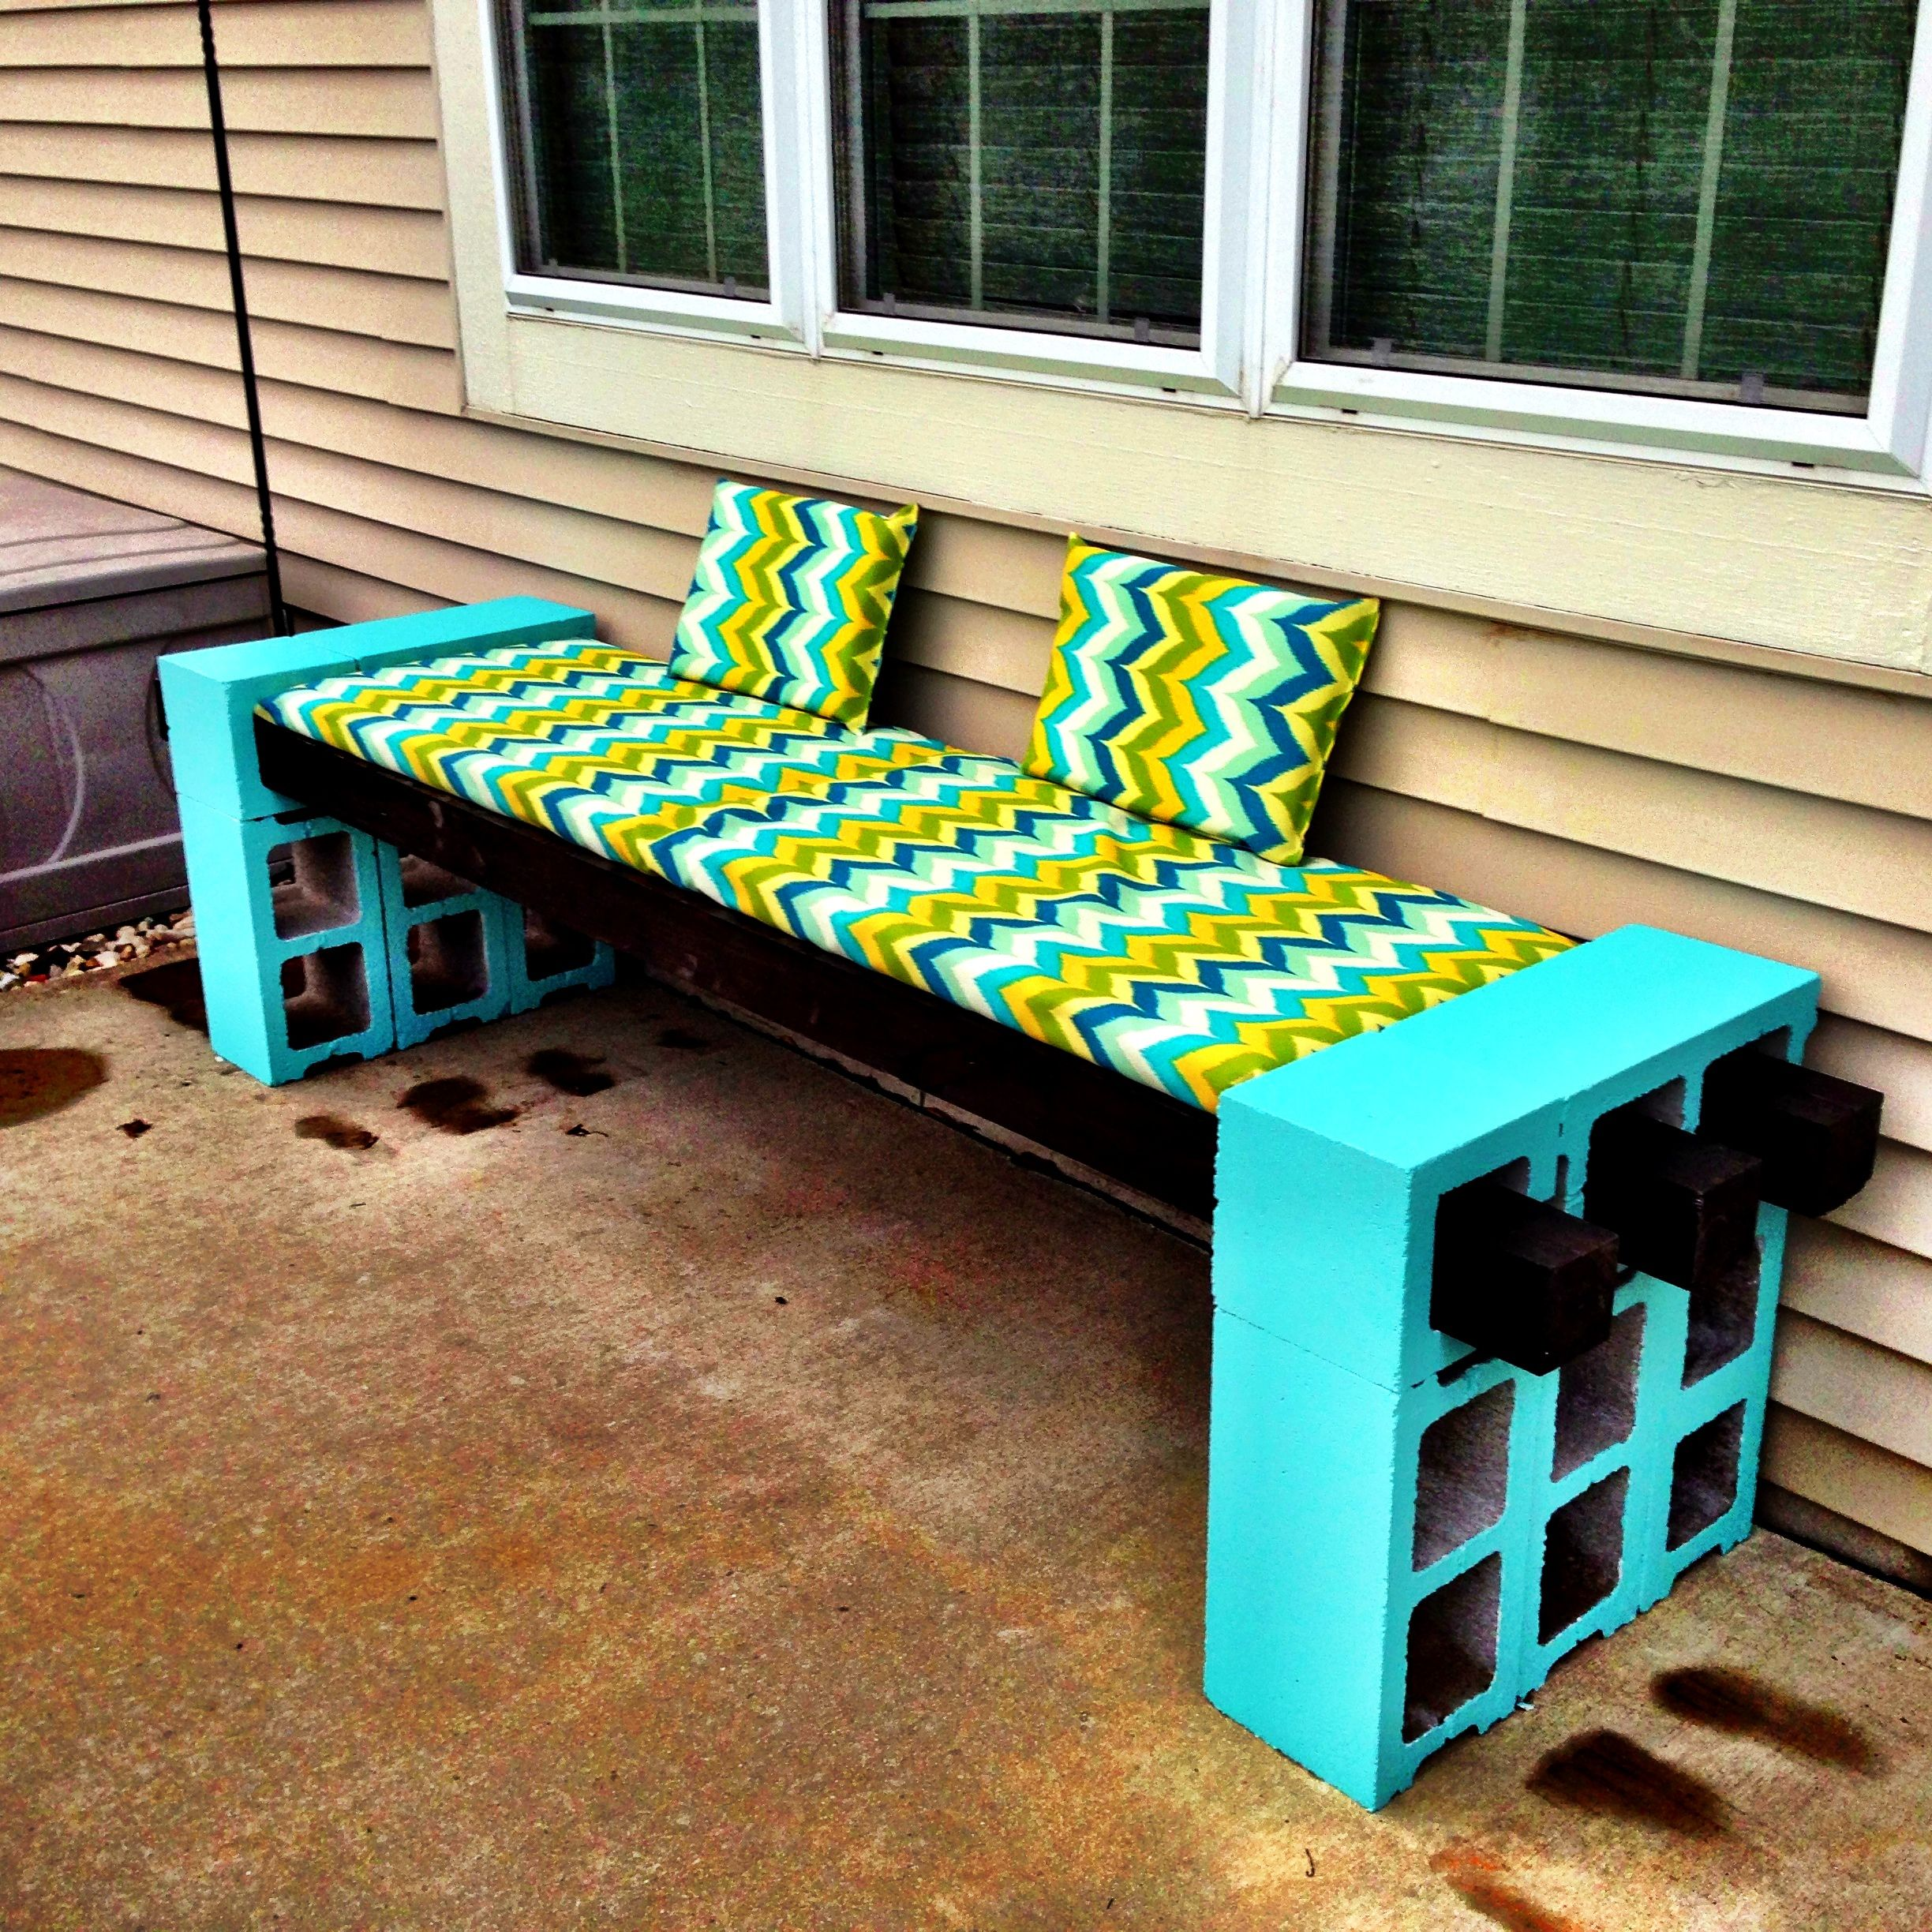 blue bench ladder amazing grey painted outdoor on porch floor carved with decorative back front pale legs benches concrete and decor ideas